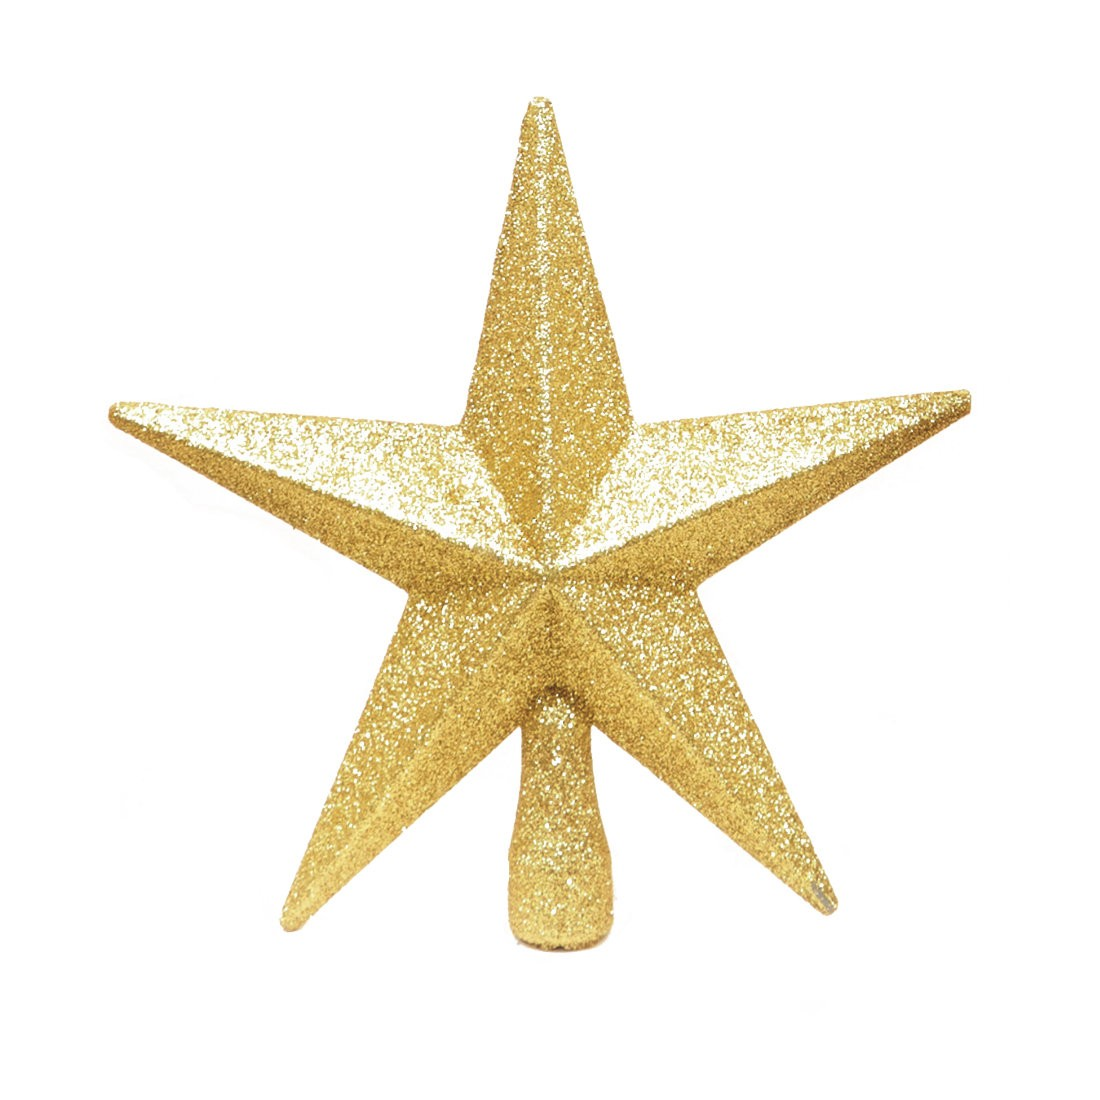 Gold Christmas Tree Topper Glitter Star